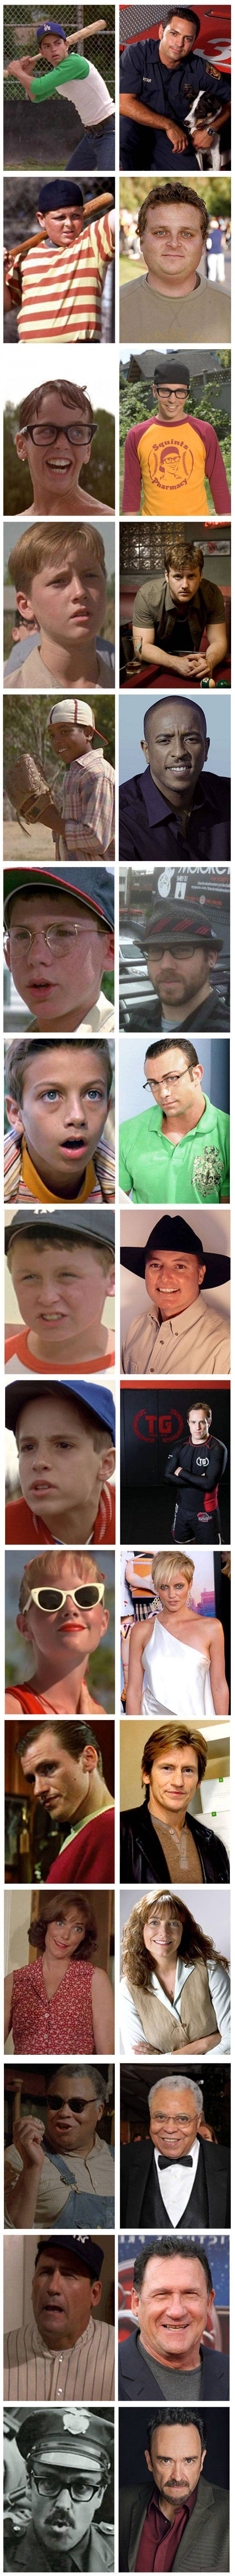 The Sandlot Then and Now - omg! Squints is hot now!!